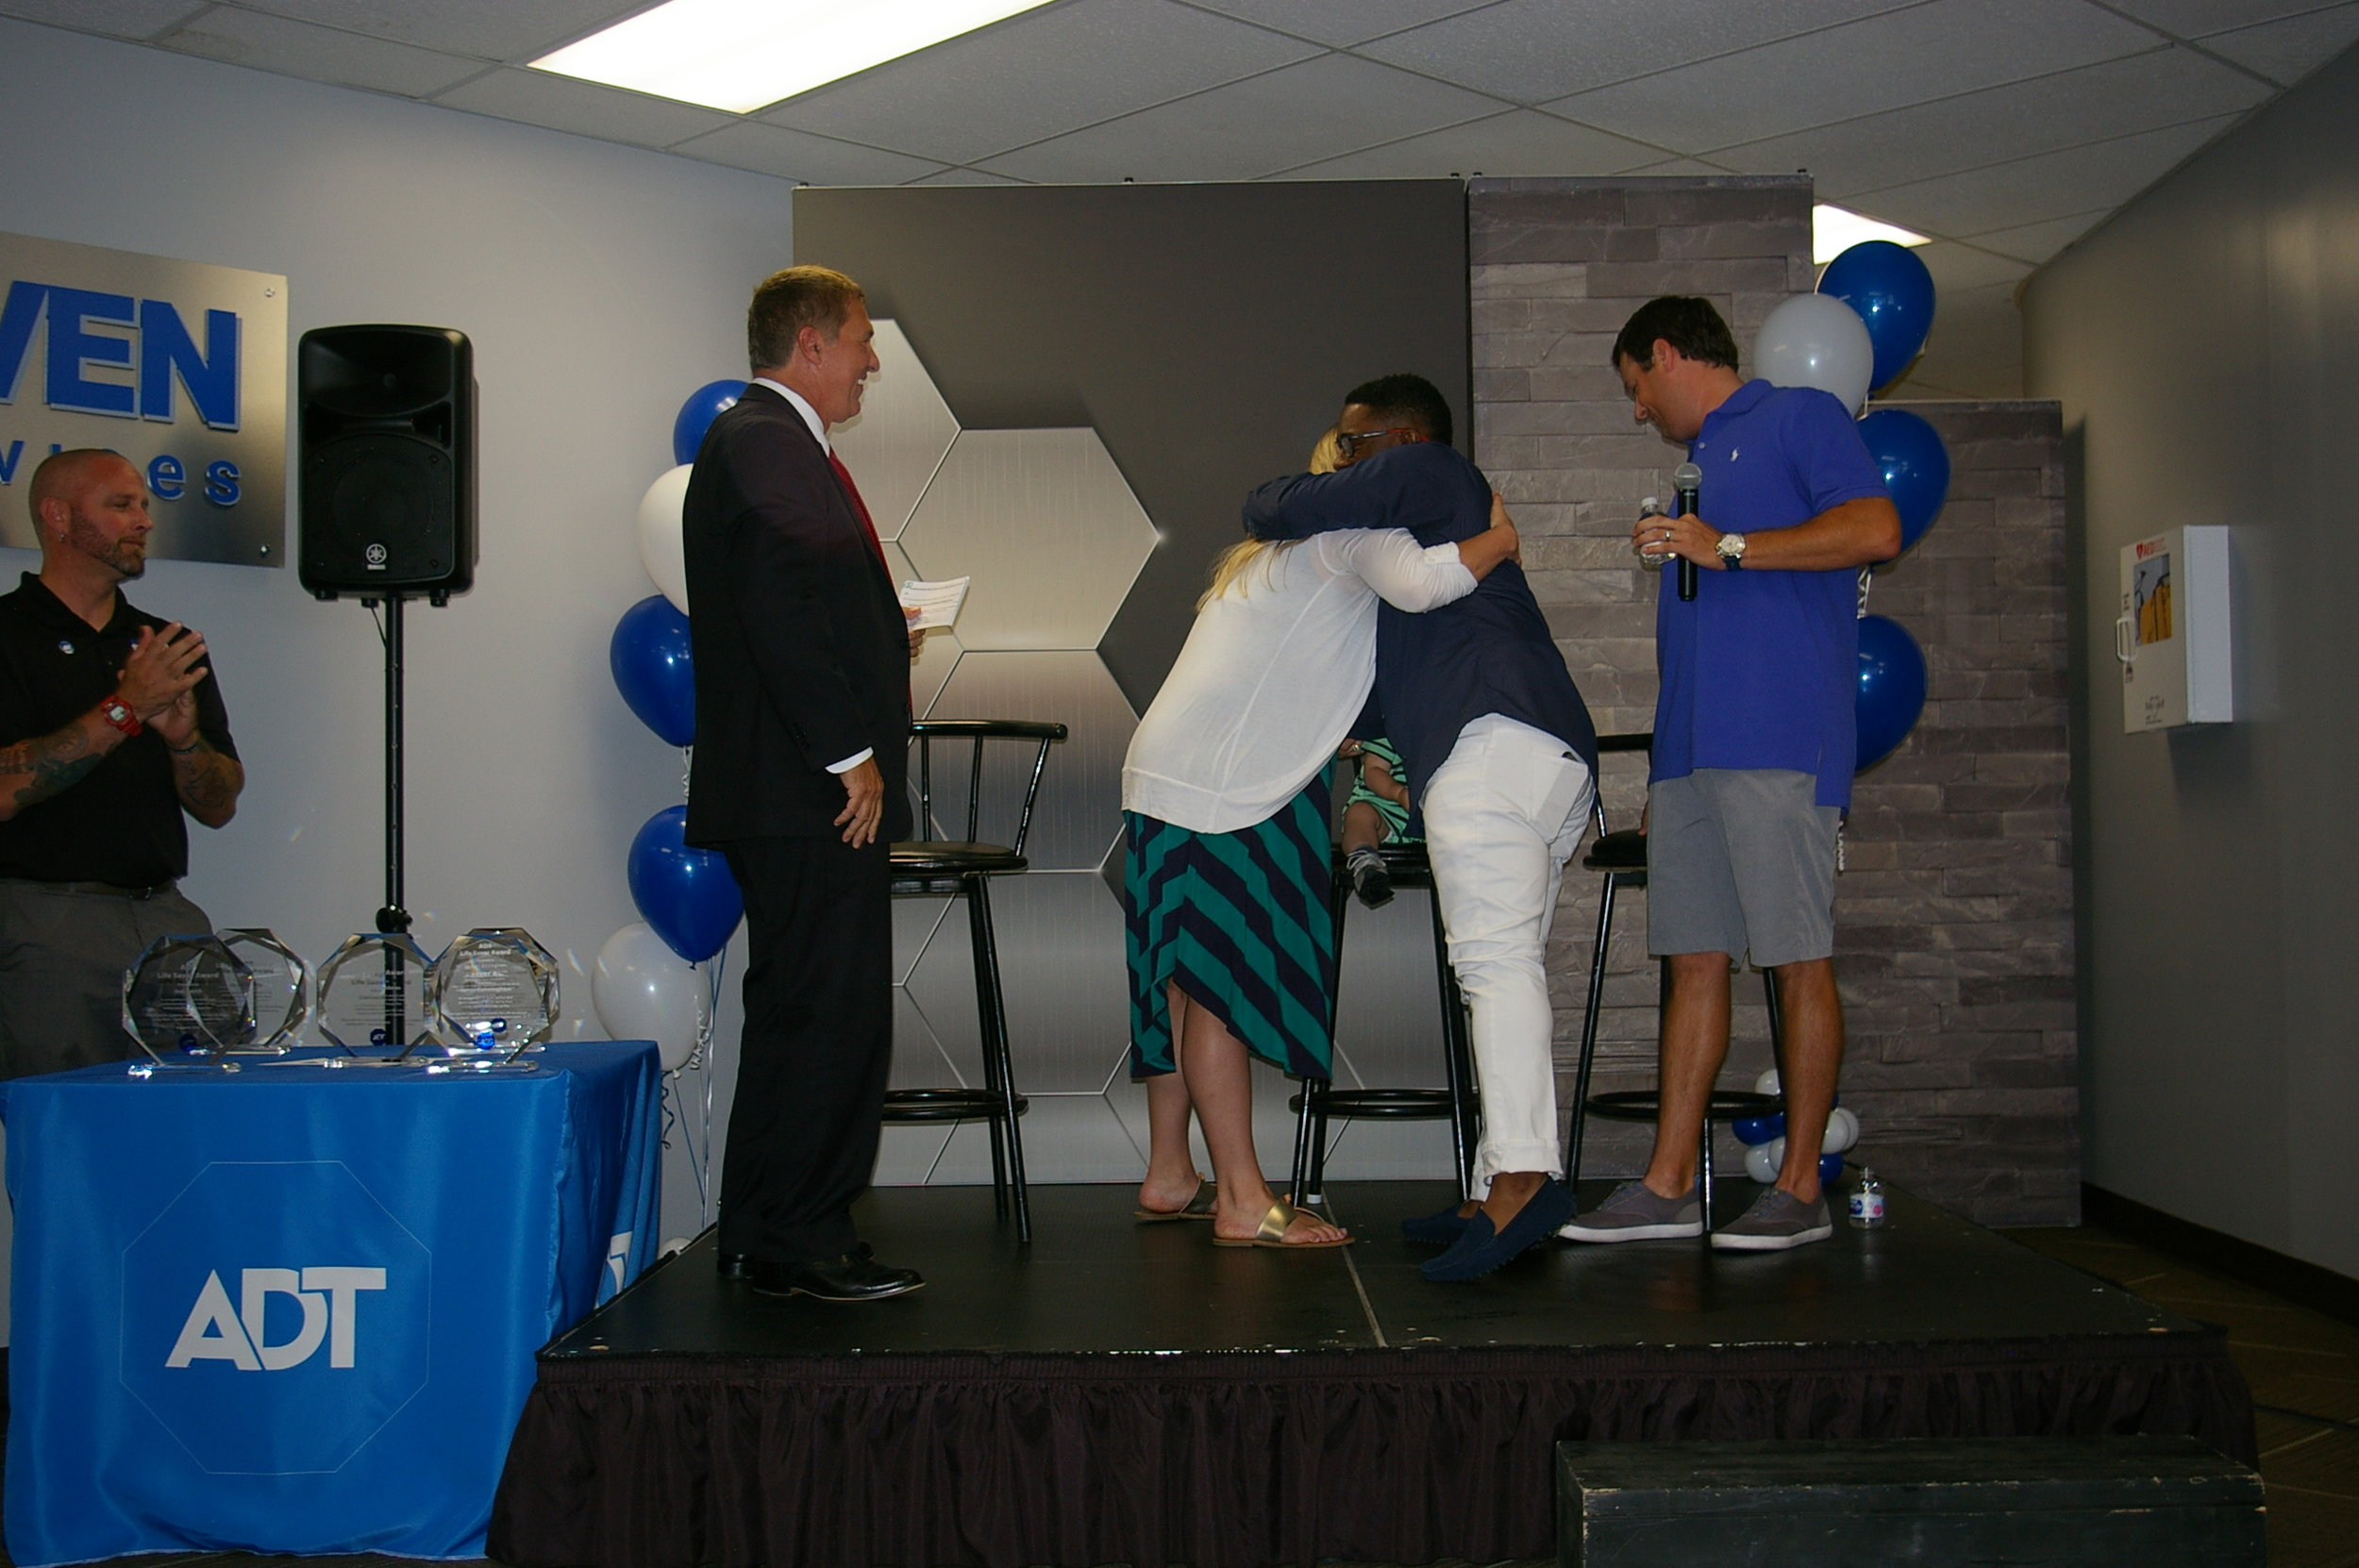 Jeanette Faubion/Citizen photo Kayla and Lee Hoffman of Parkville greet ADT dispatcher Jamar Cunningham (center) with a hug at a Life Saver Program award ceremony last week in North Kansas City. Cunningham was flown in from Florida to receive an award from ADT president of dealer partnerships Joe Nuccio, far left.